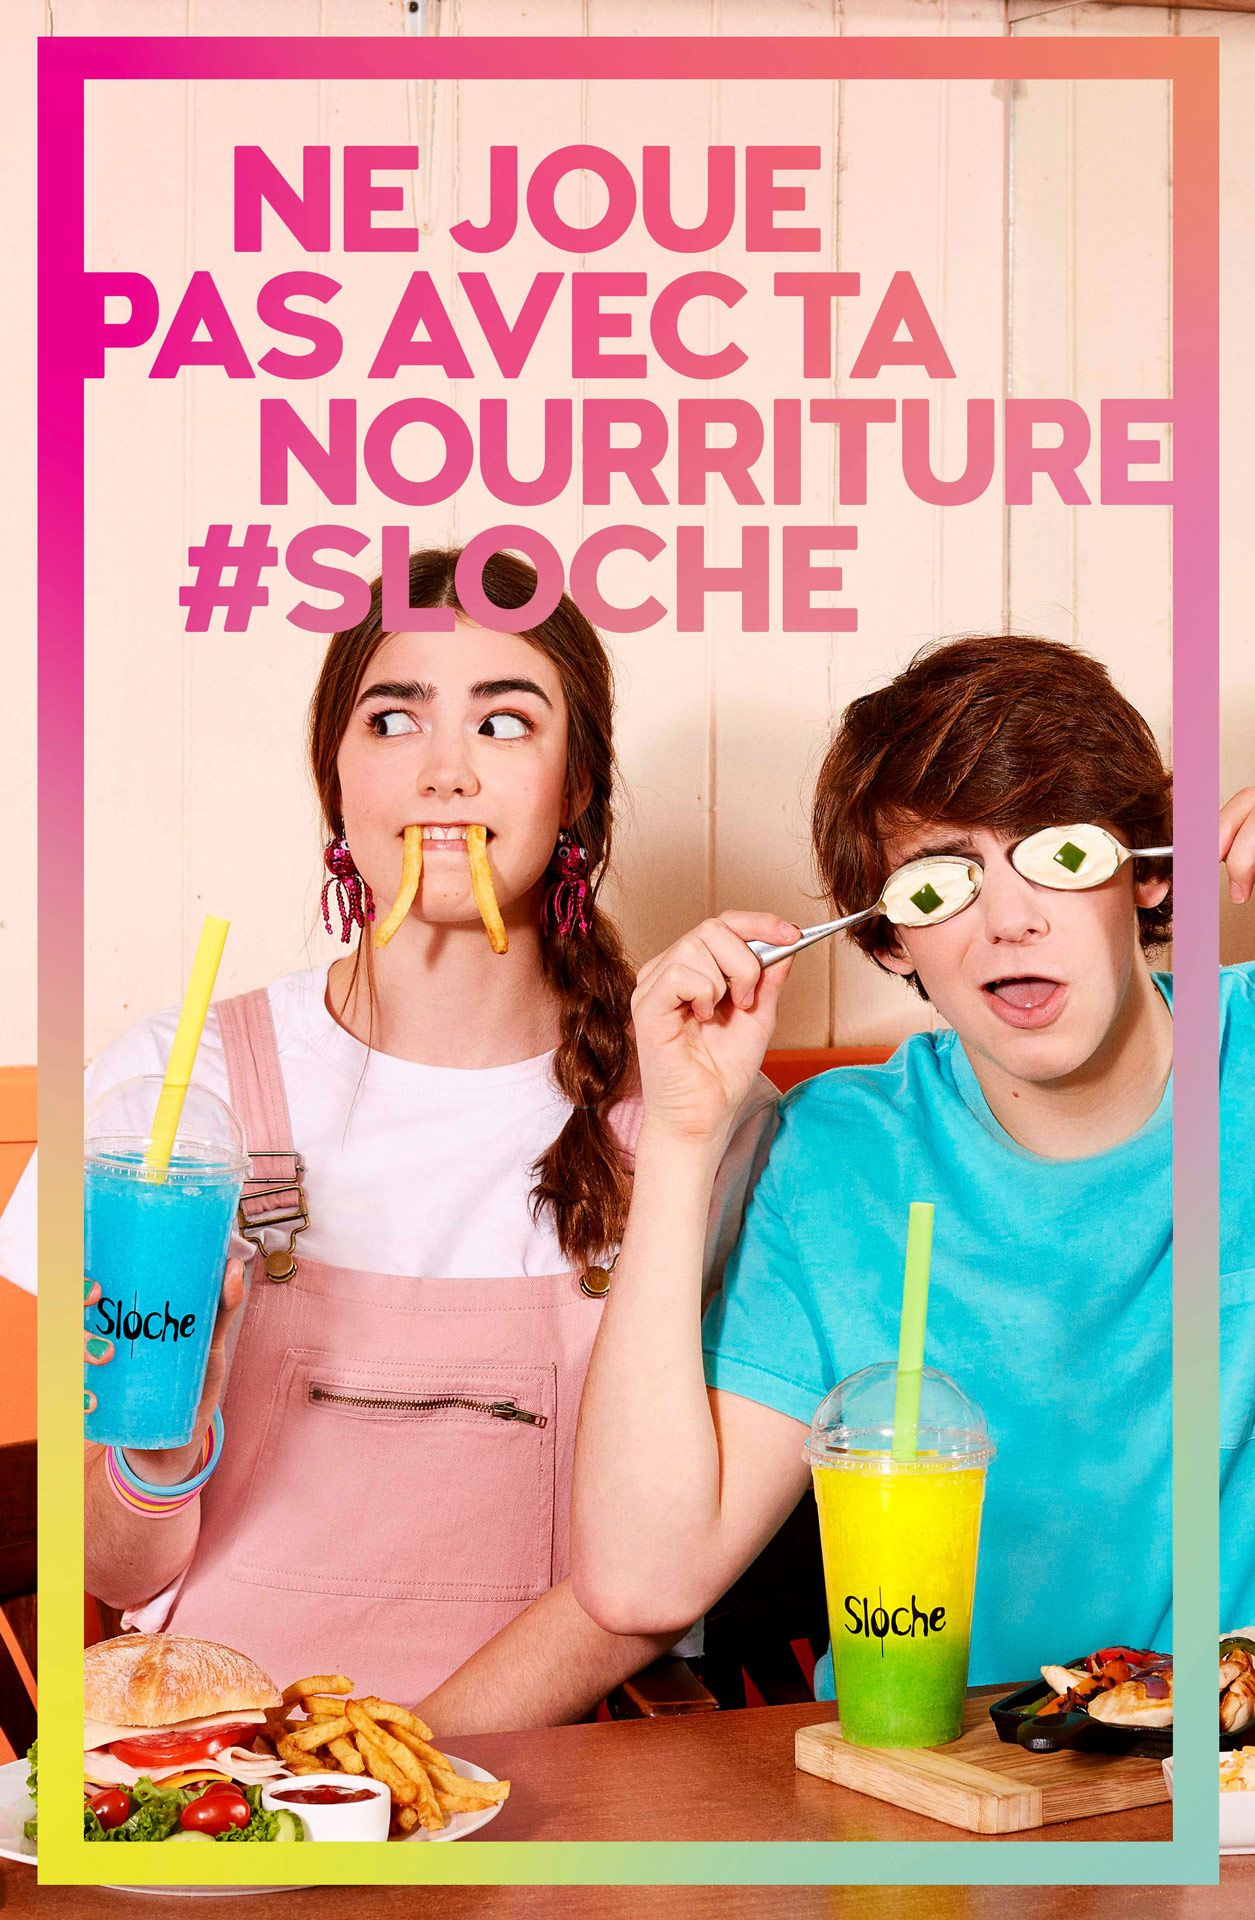 two teenagers with junk food making funny faces holding slurpees by Jocelyn Michel for Sloche Couche Tard with Havas